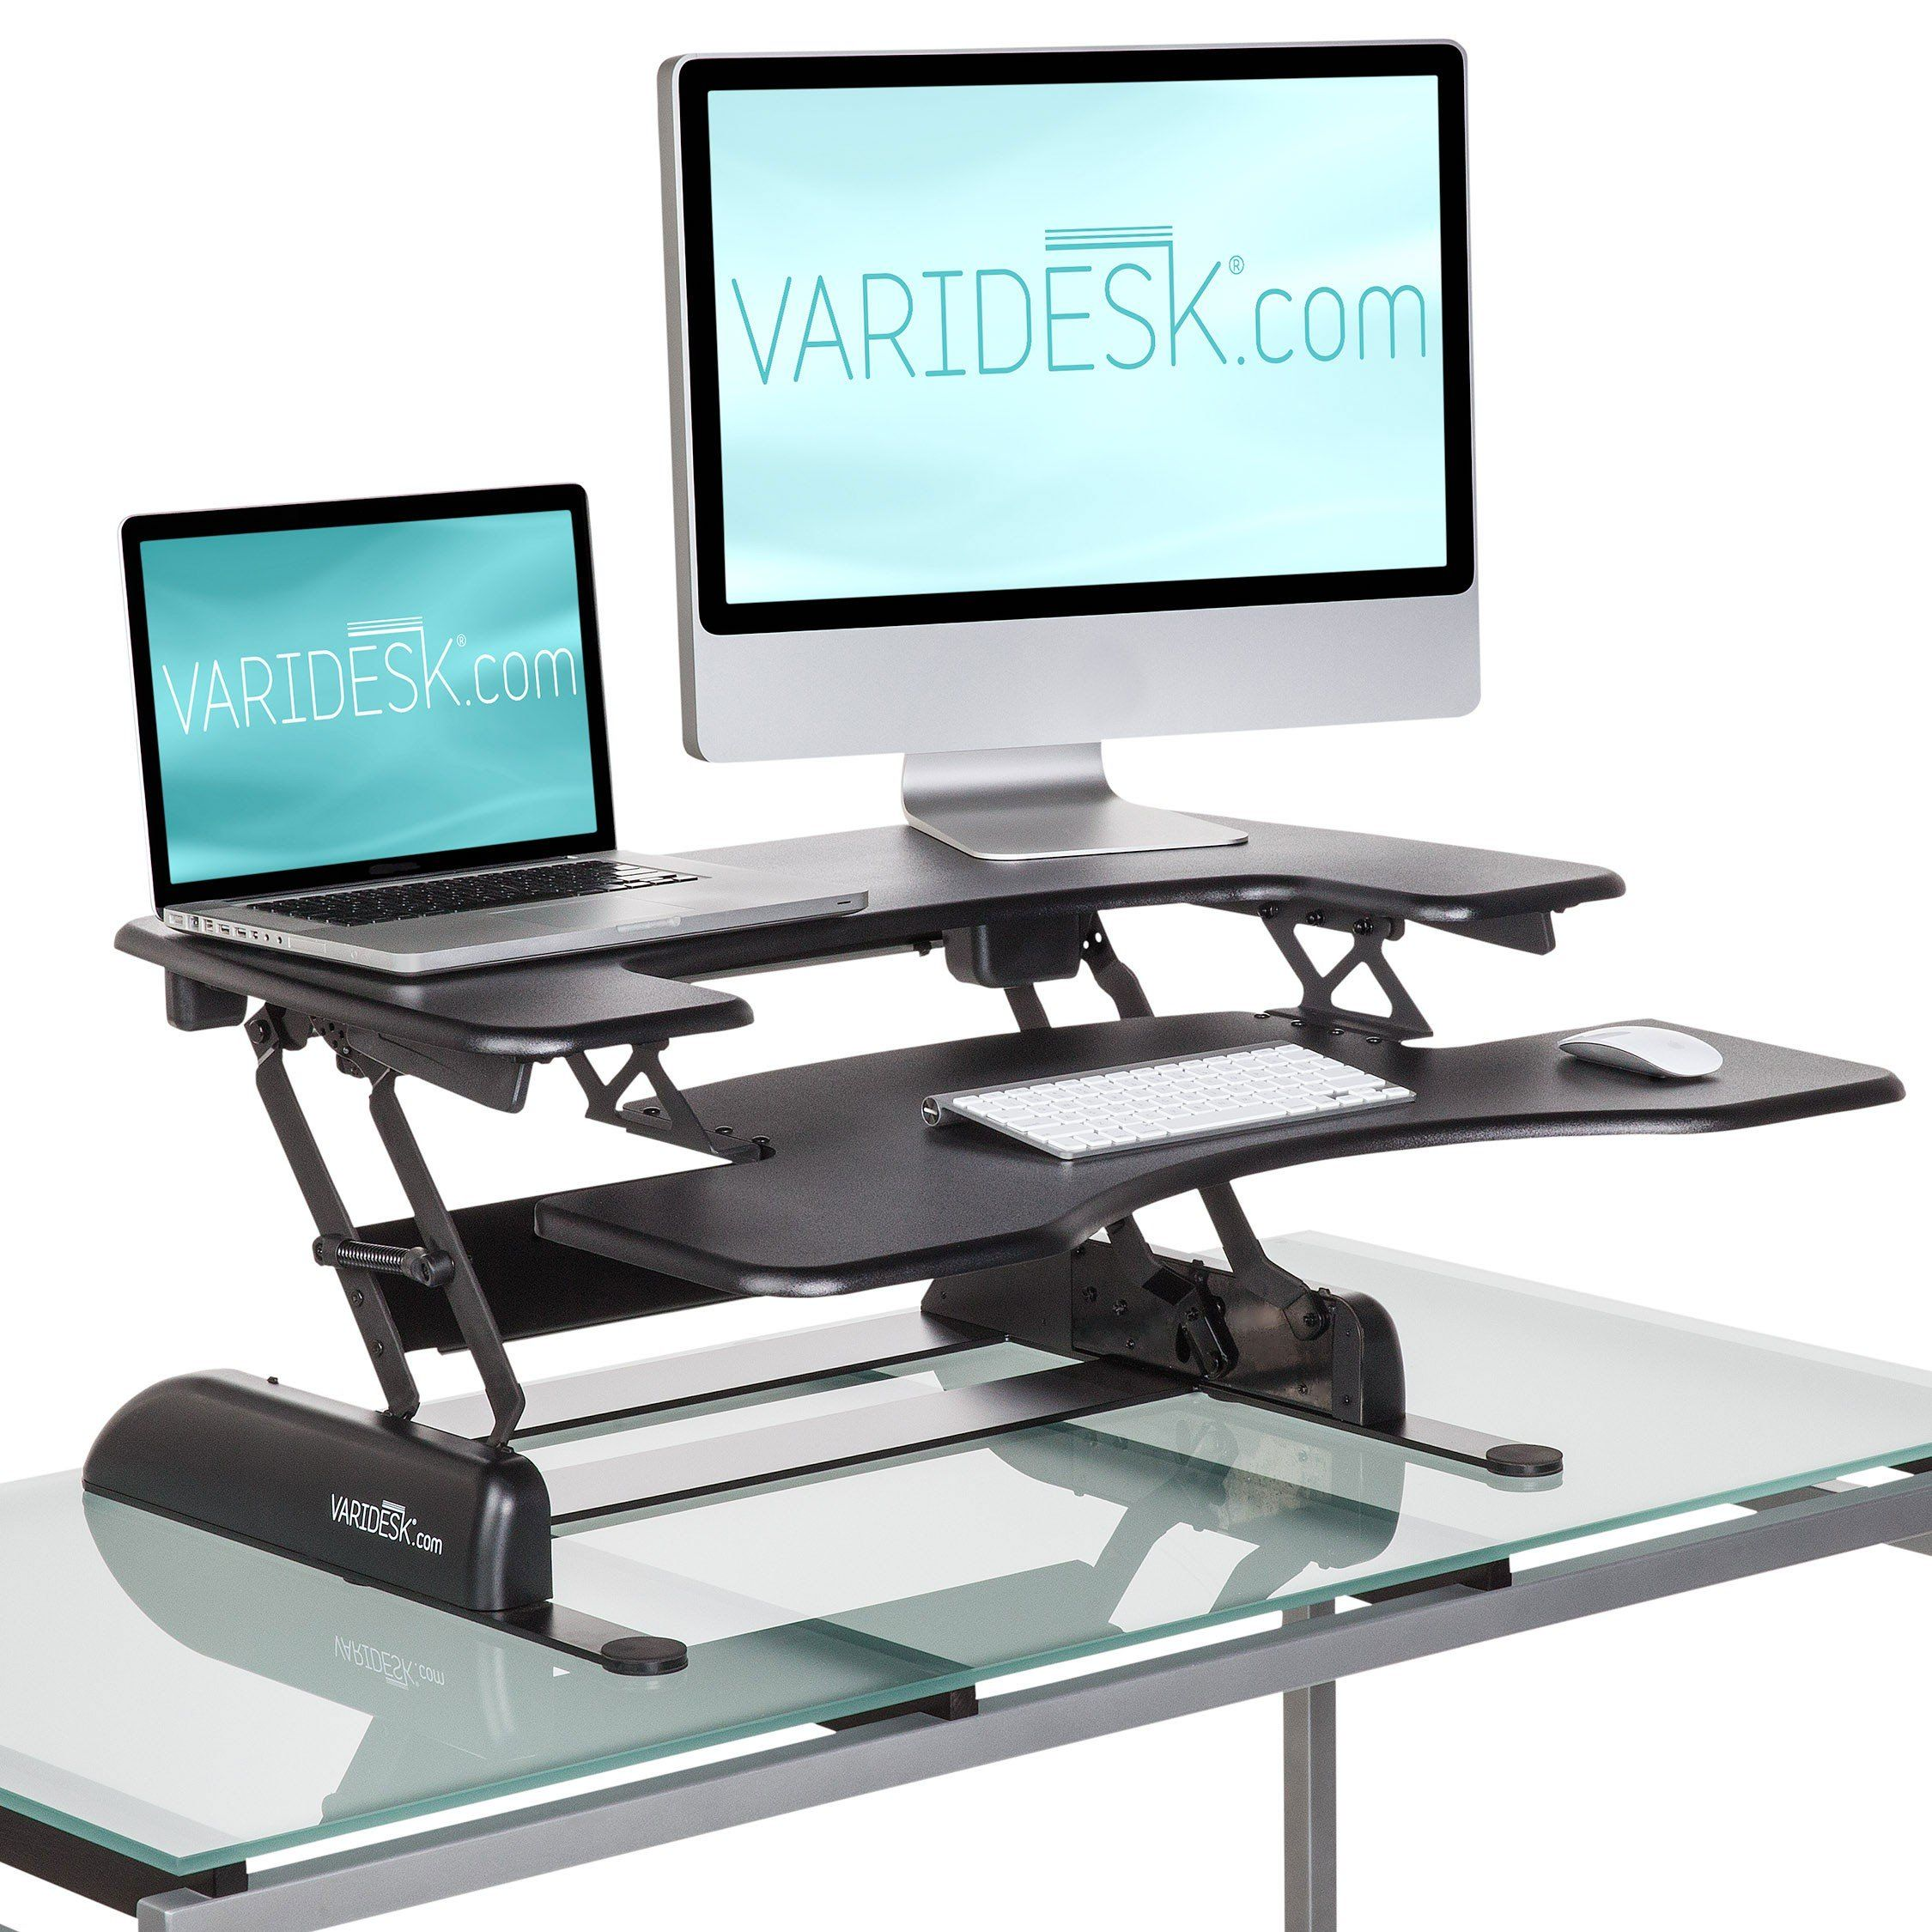 Varidesk pro plus standing desk office project pinterest desks